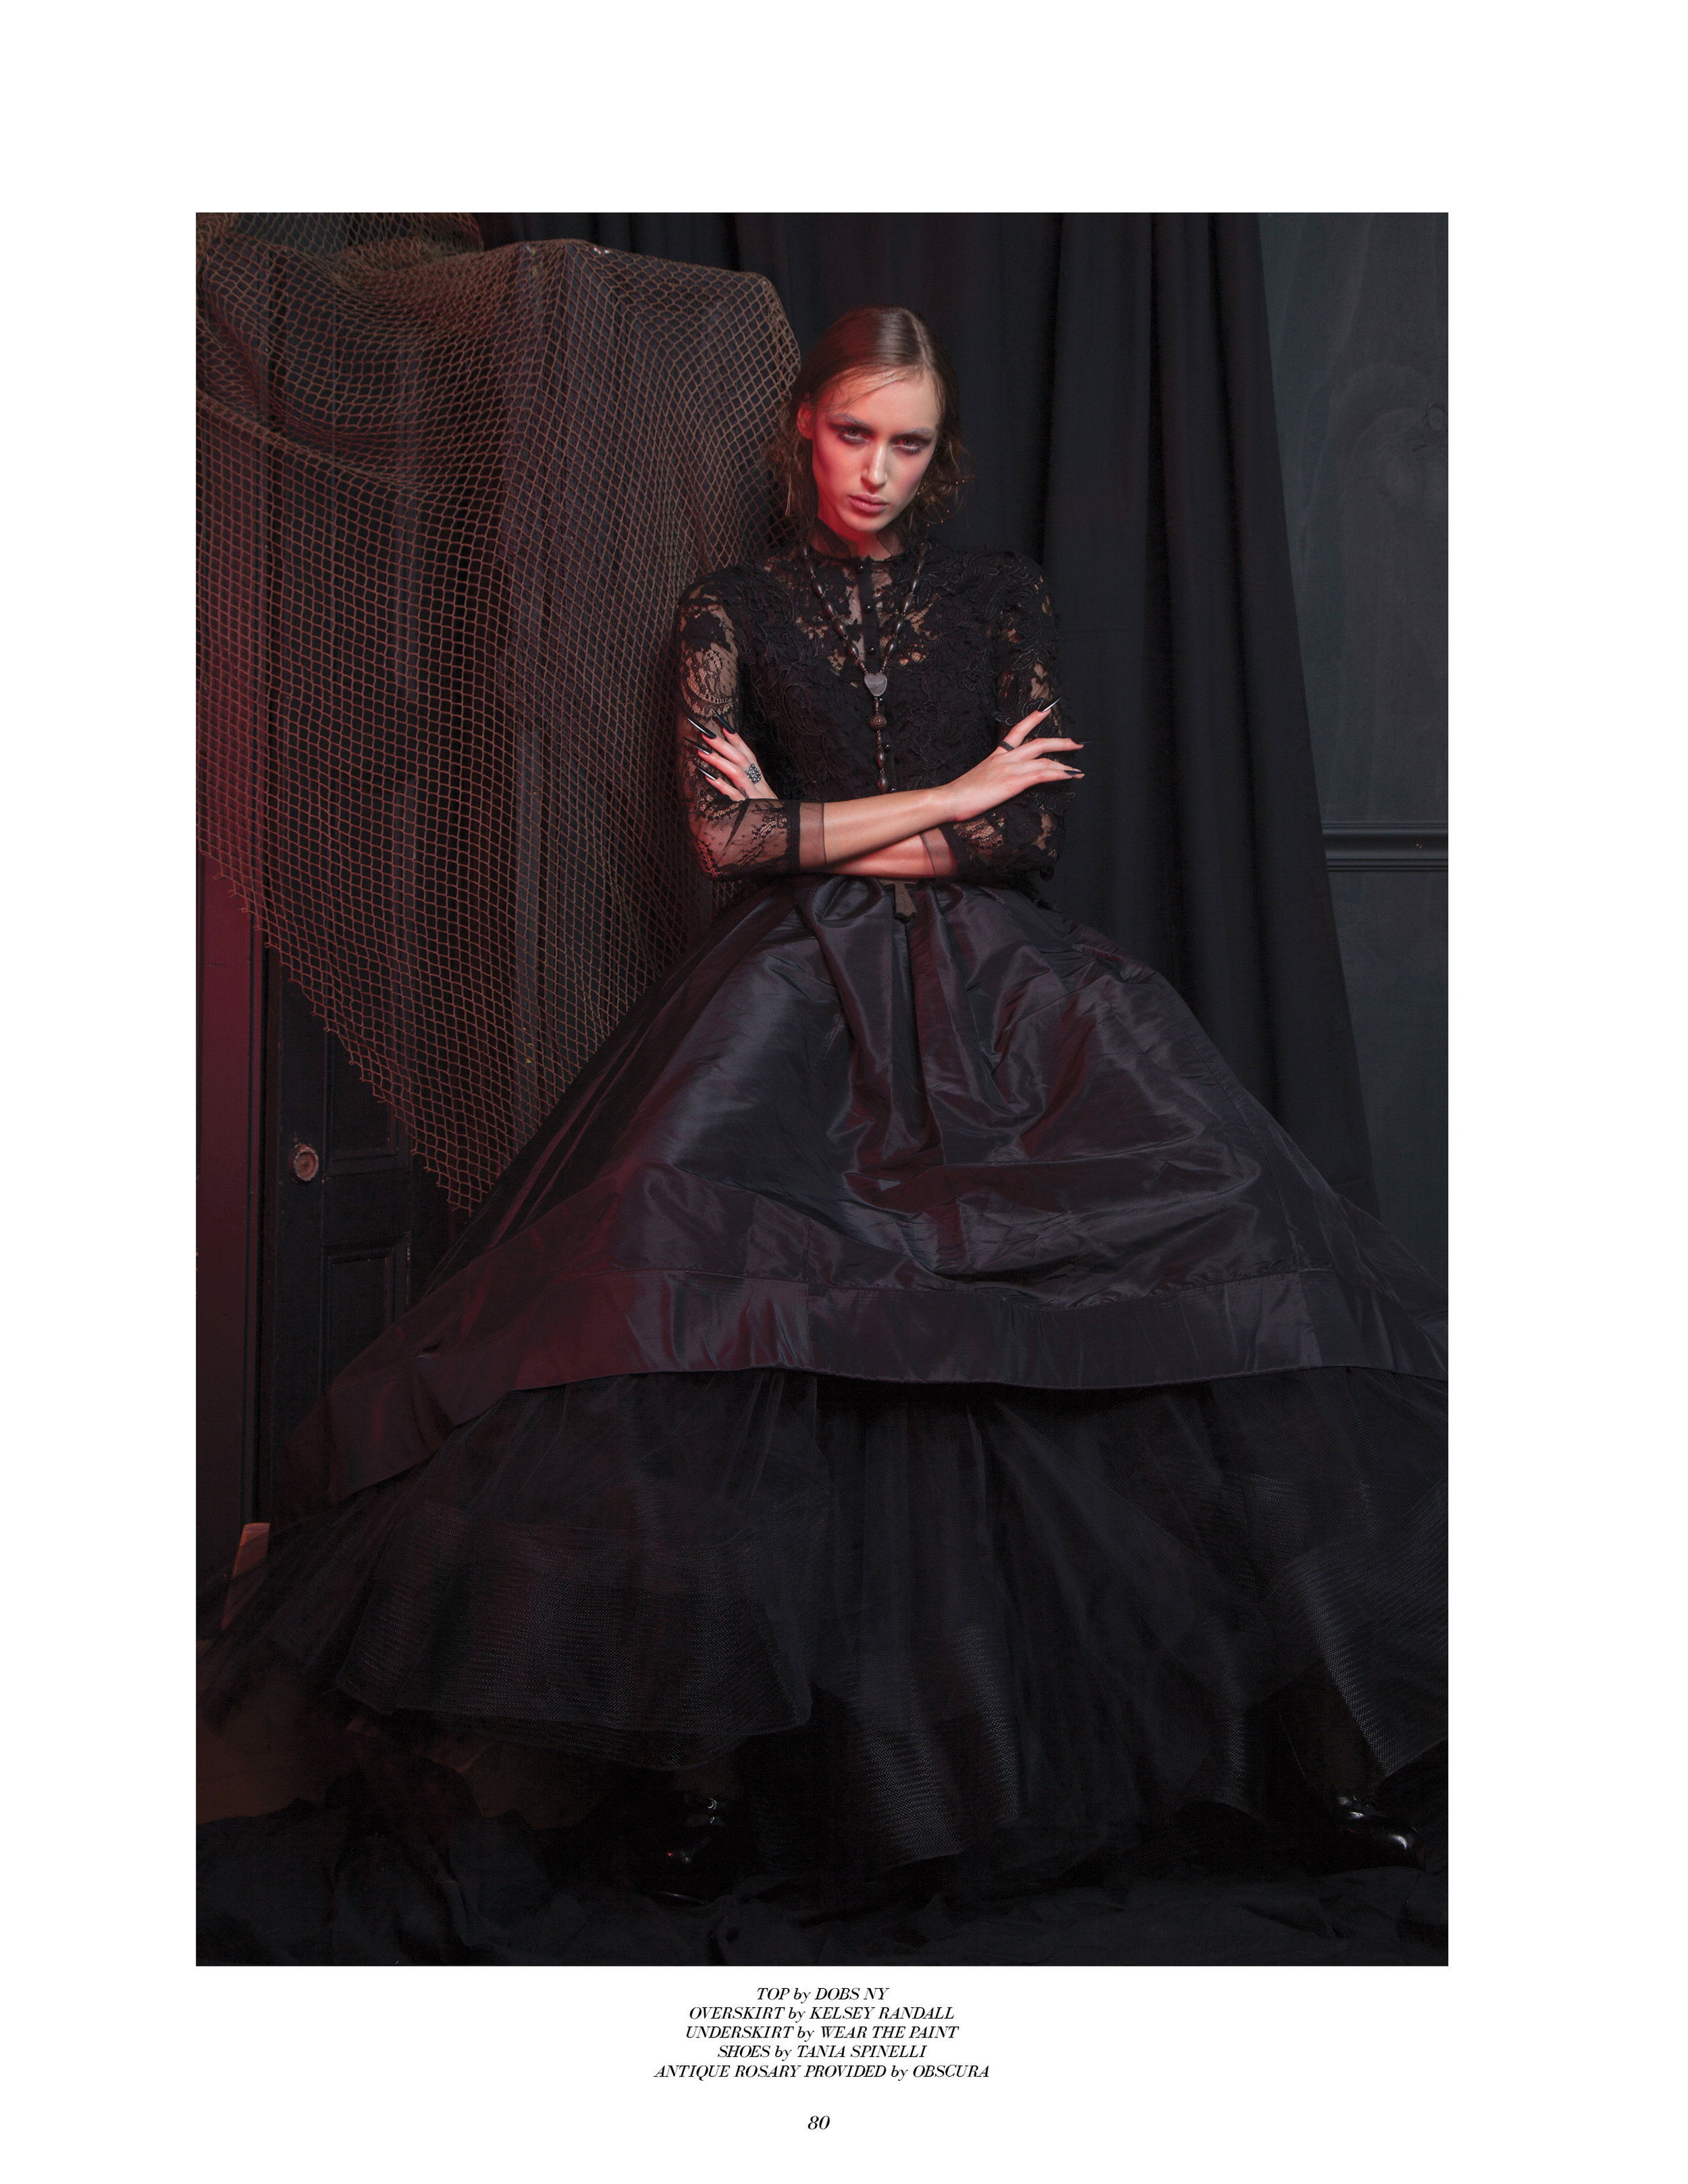 kelsey randall emerging designer made-to-measure fashion editorial custom bespoke black silk taffeta gown gathered waist wishbone racer back horsehair full skirt